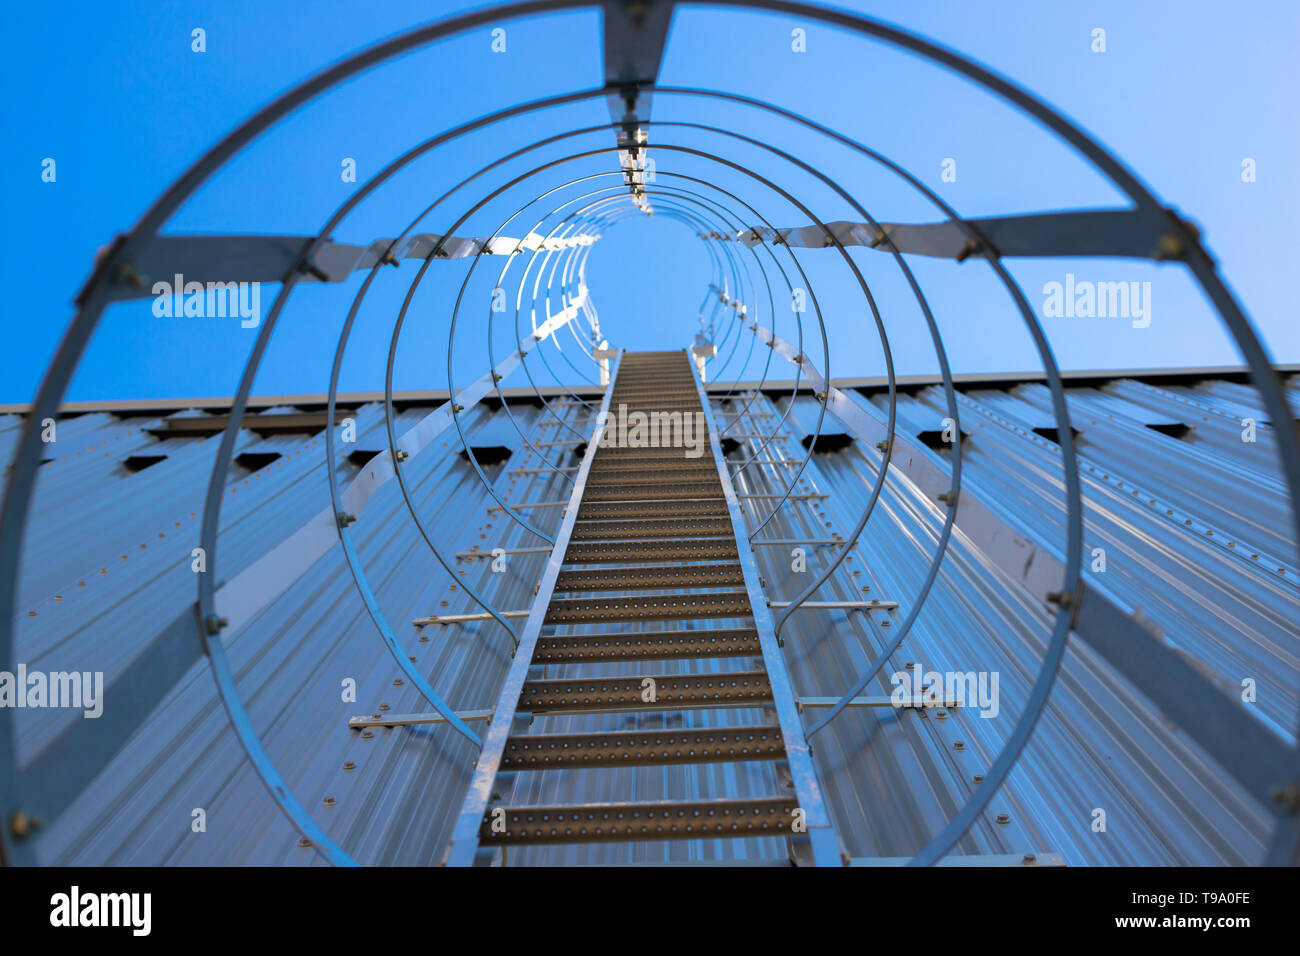 Vertical metal staircase to the roof of the hangar. Staircase surrounded by a protective frame. - Stock Image